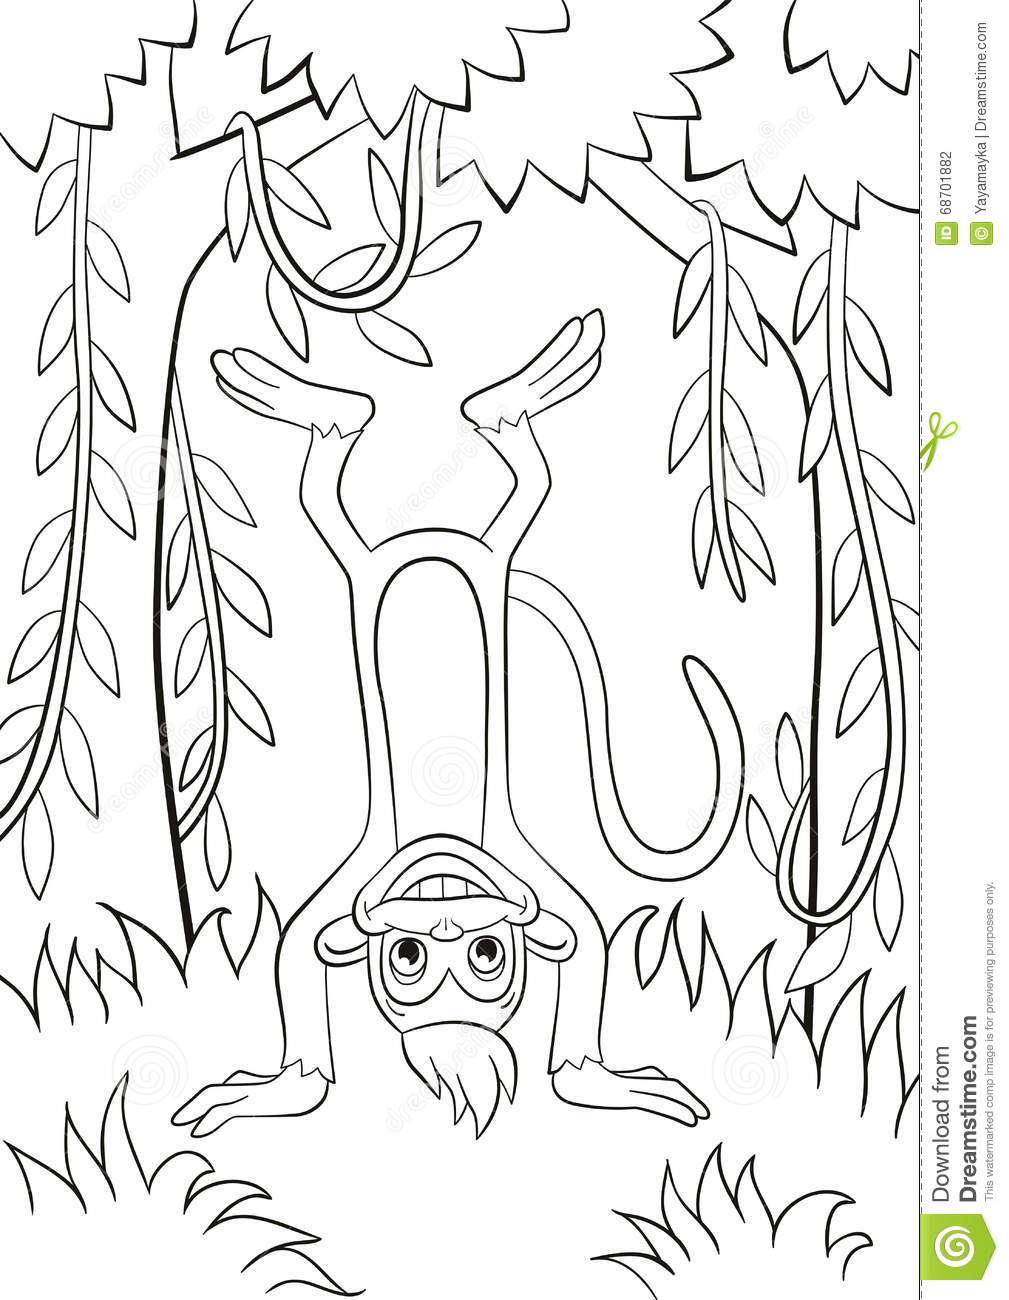 the monkey is upside down in the forest stock vector image 68701882